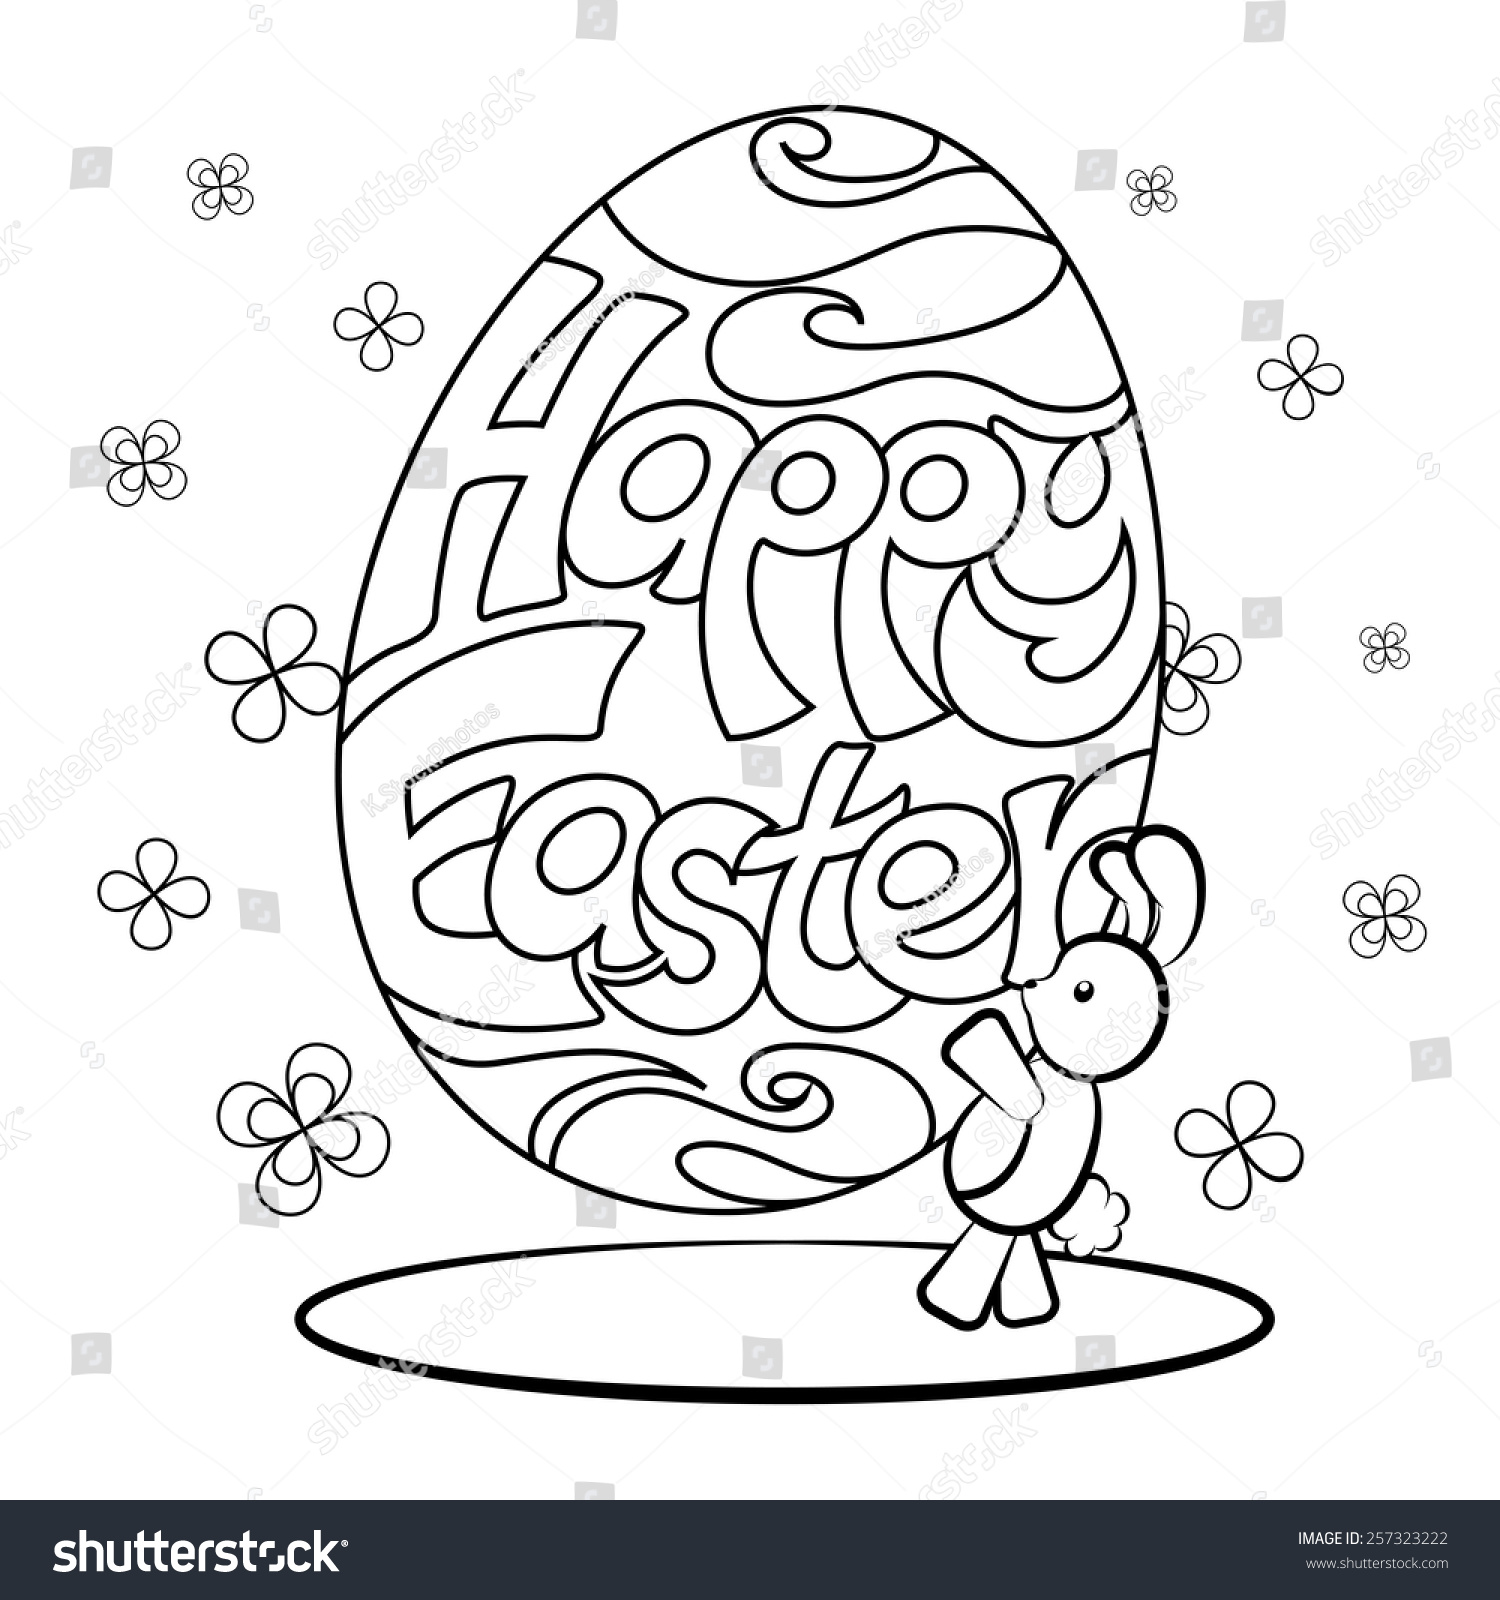 Giant Easter Egg Online Coloring Page